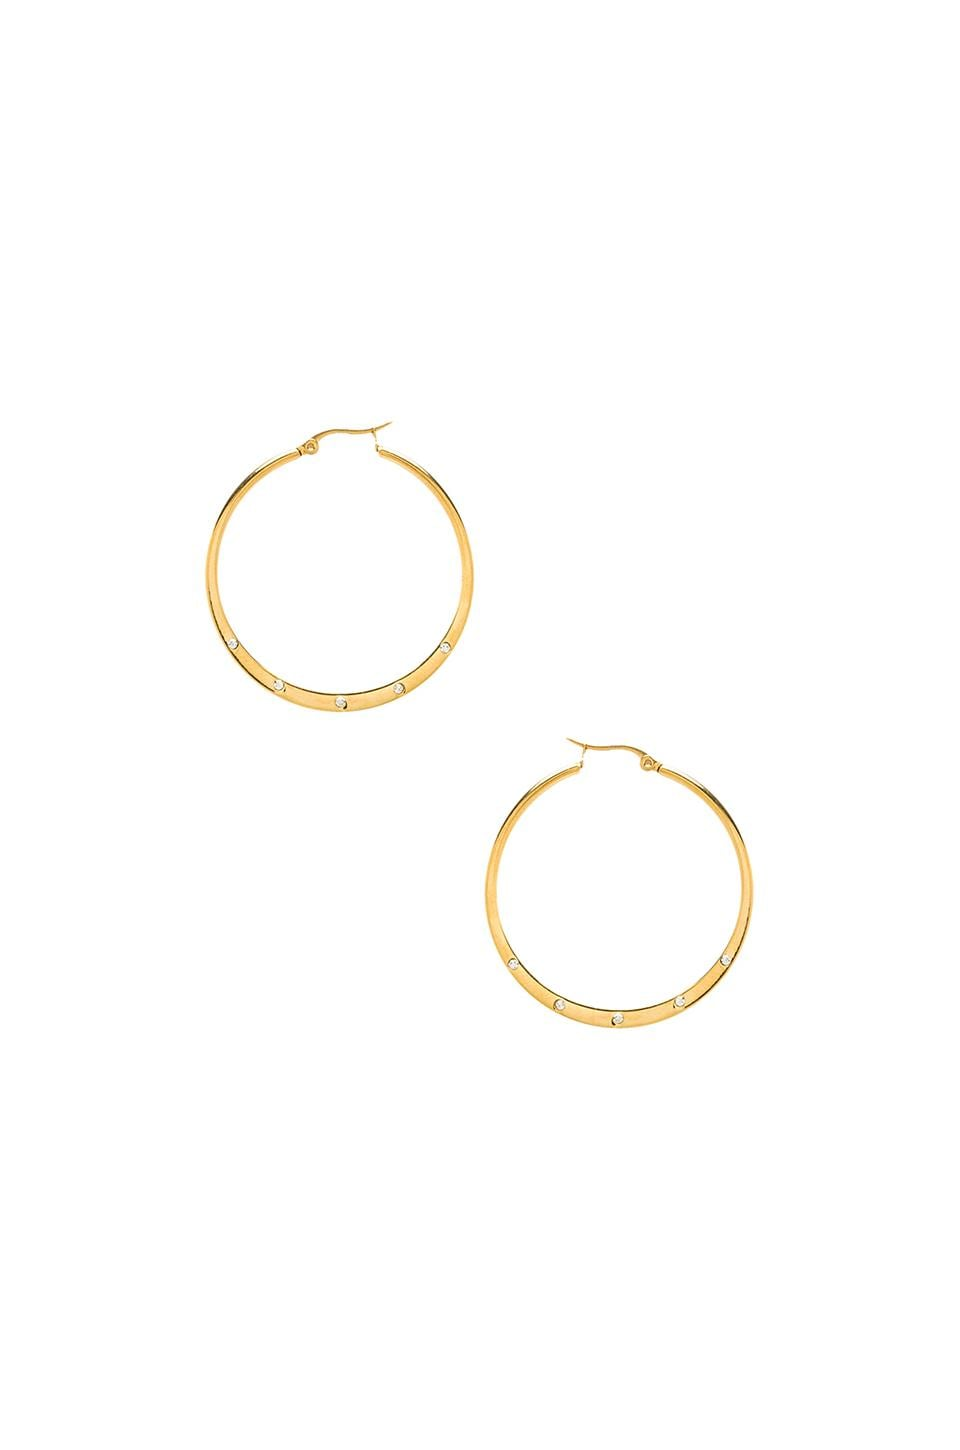 Lucky Star Shine Hoop in Gold